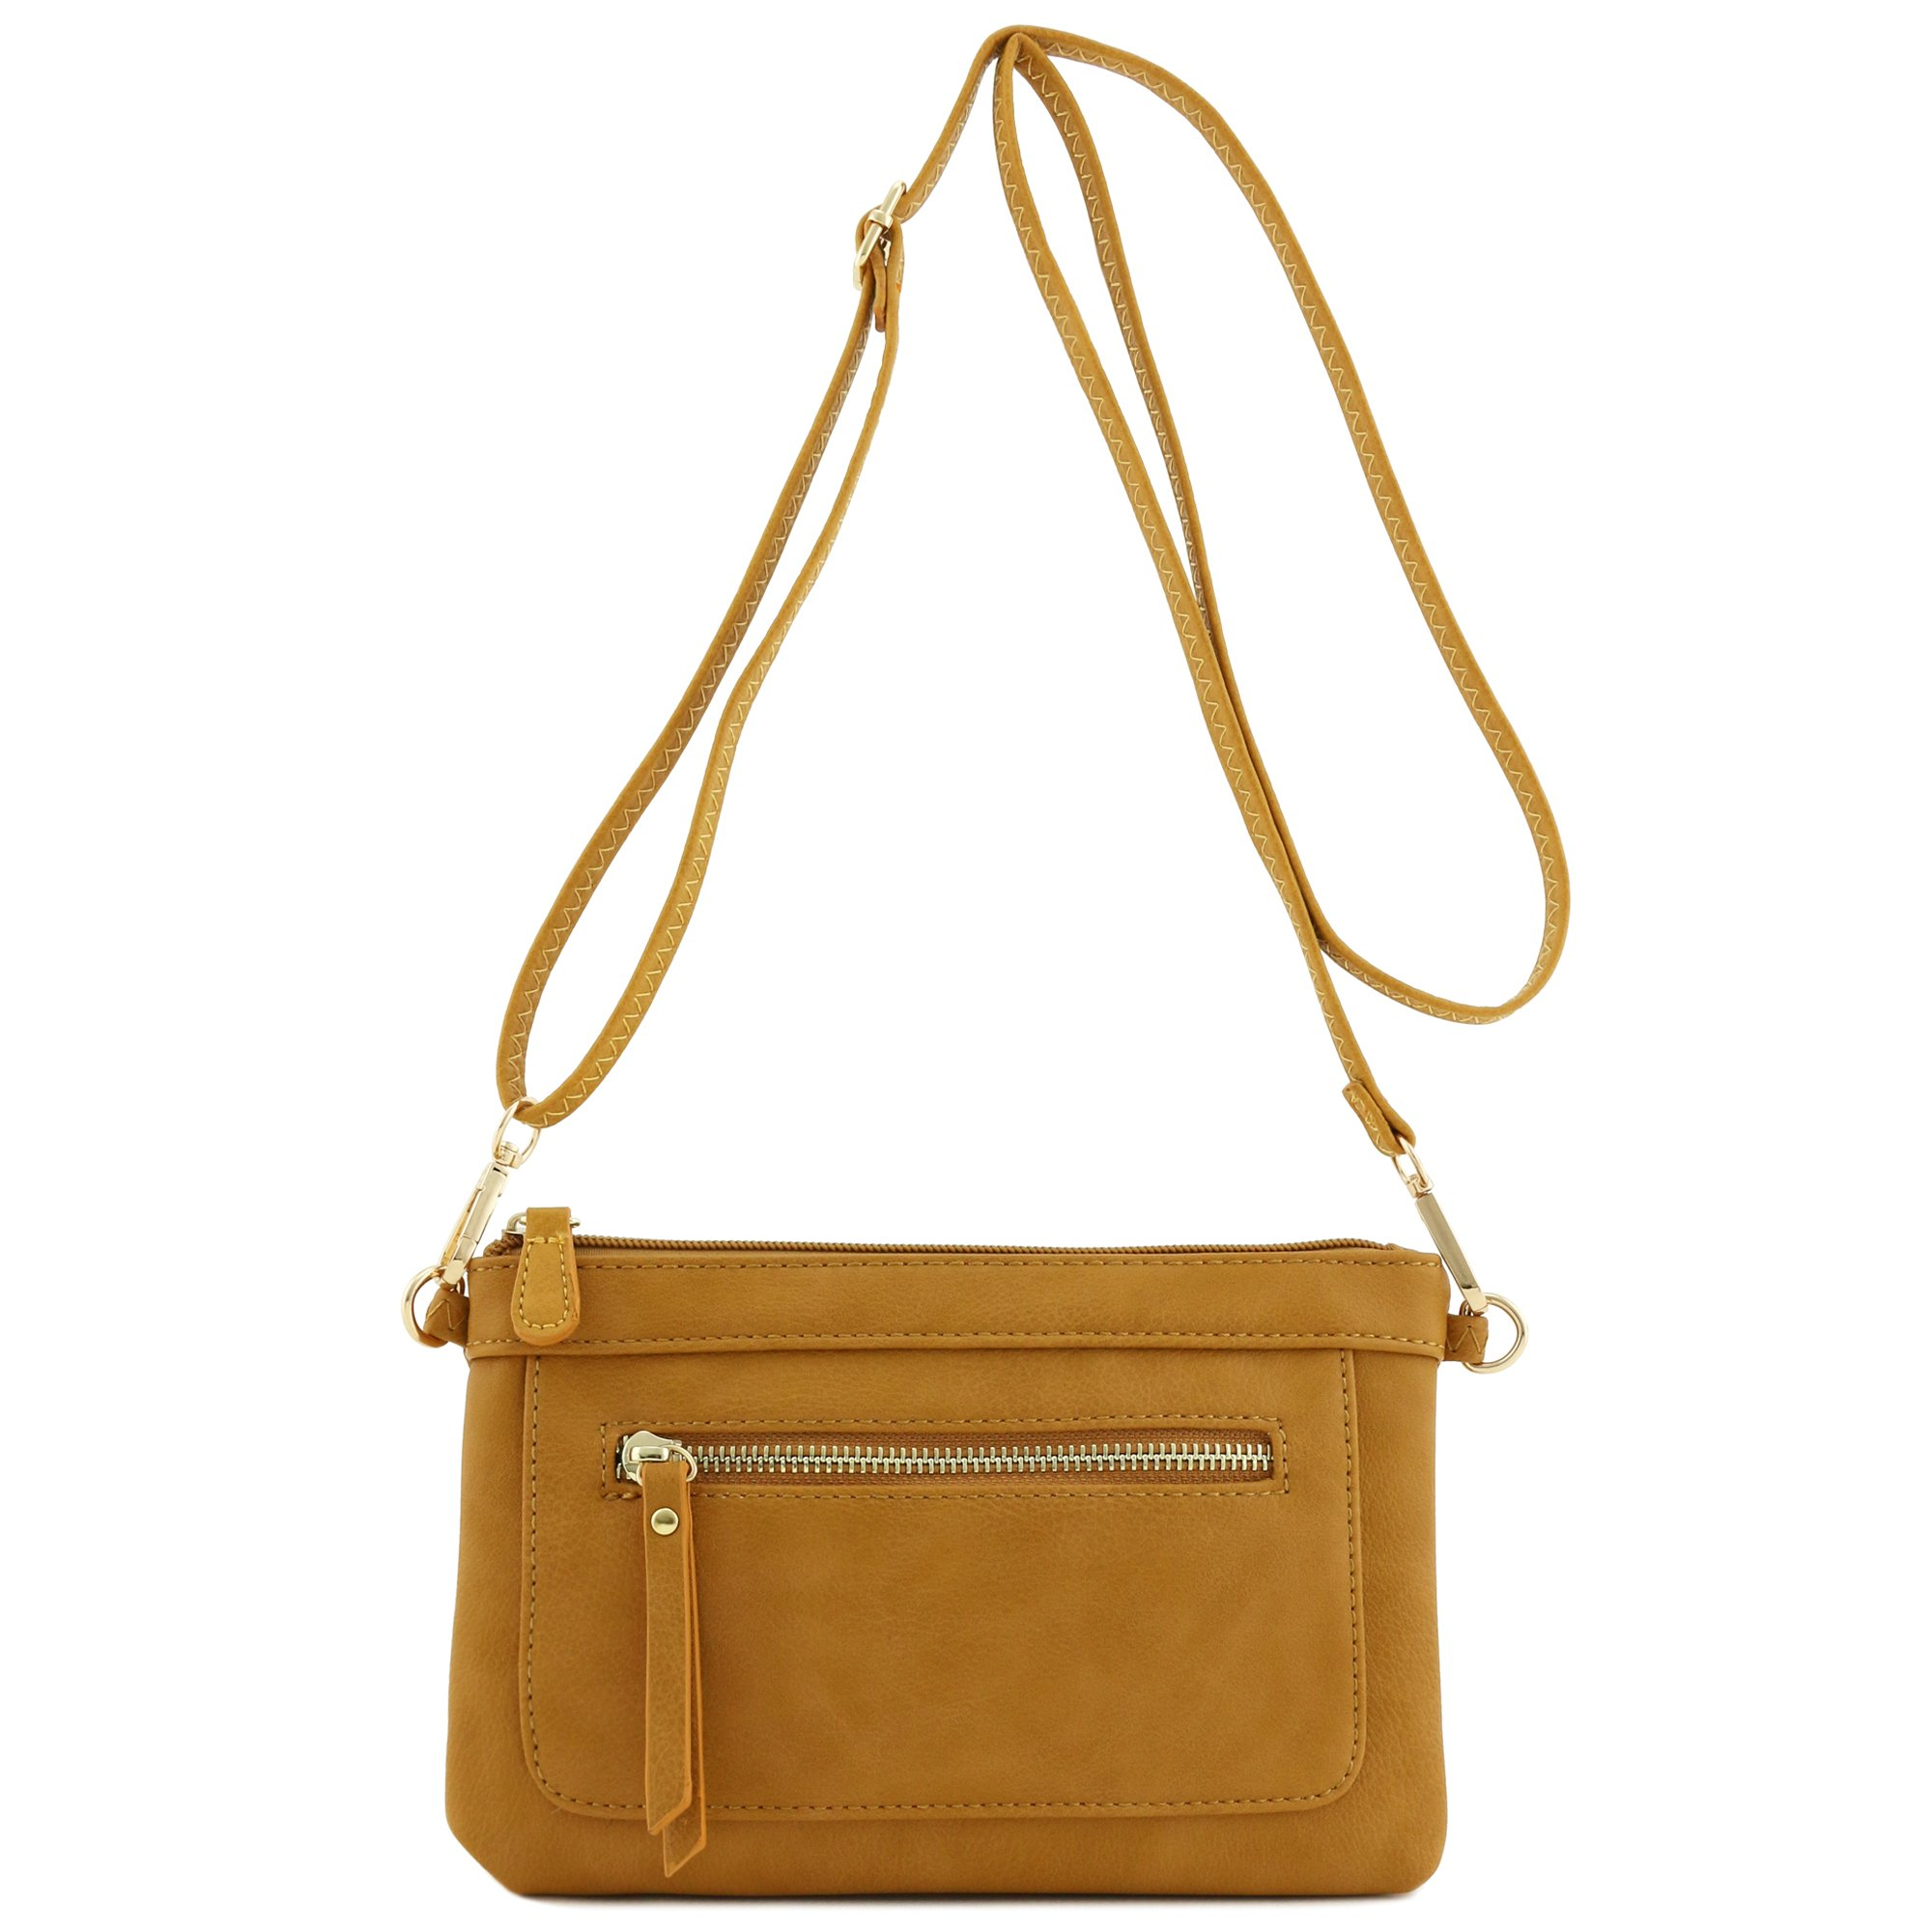 Multi-functional Wristlet Clutch and Crossbody Bag (Mustard) by FashionPuzzle